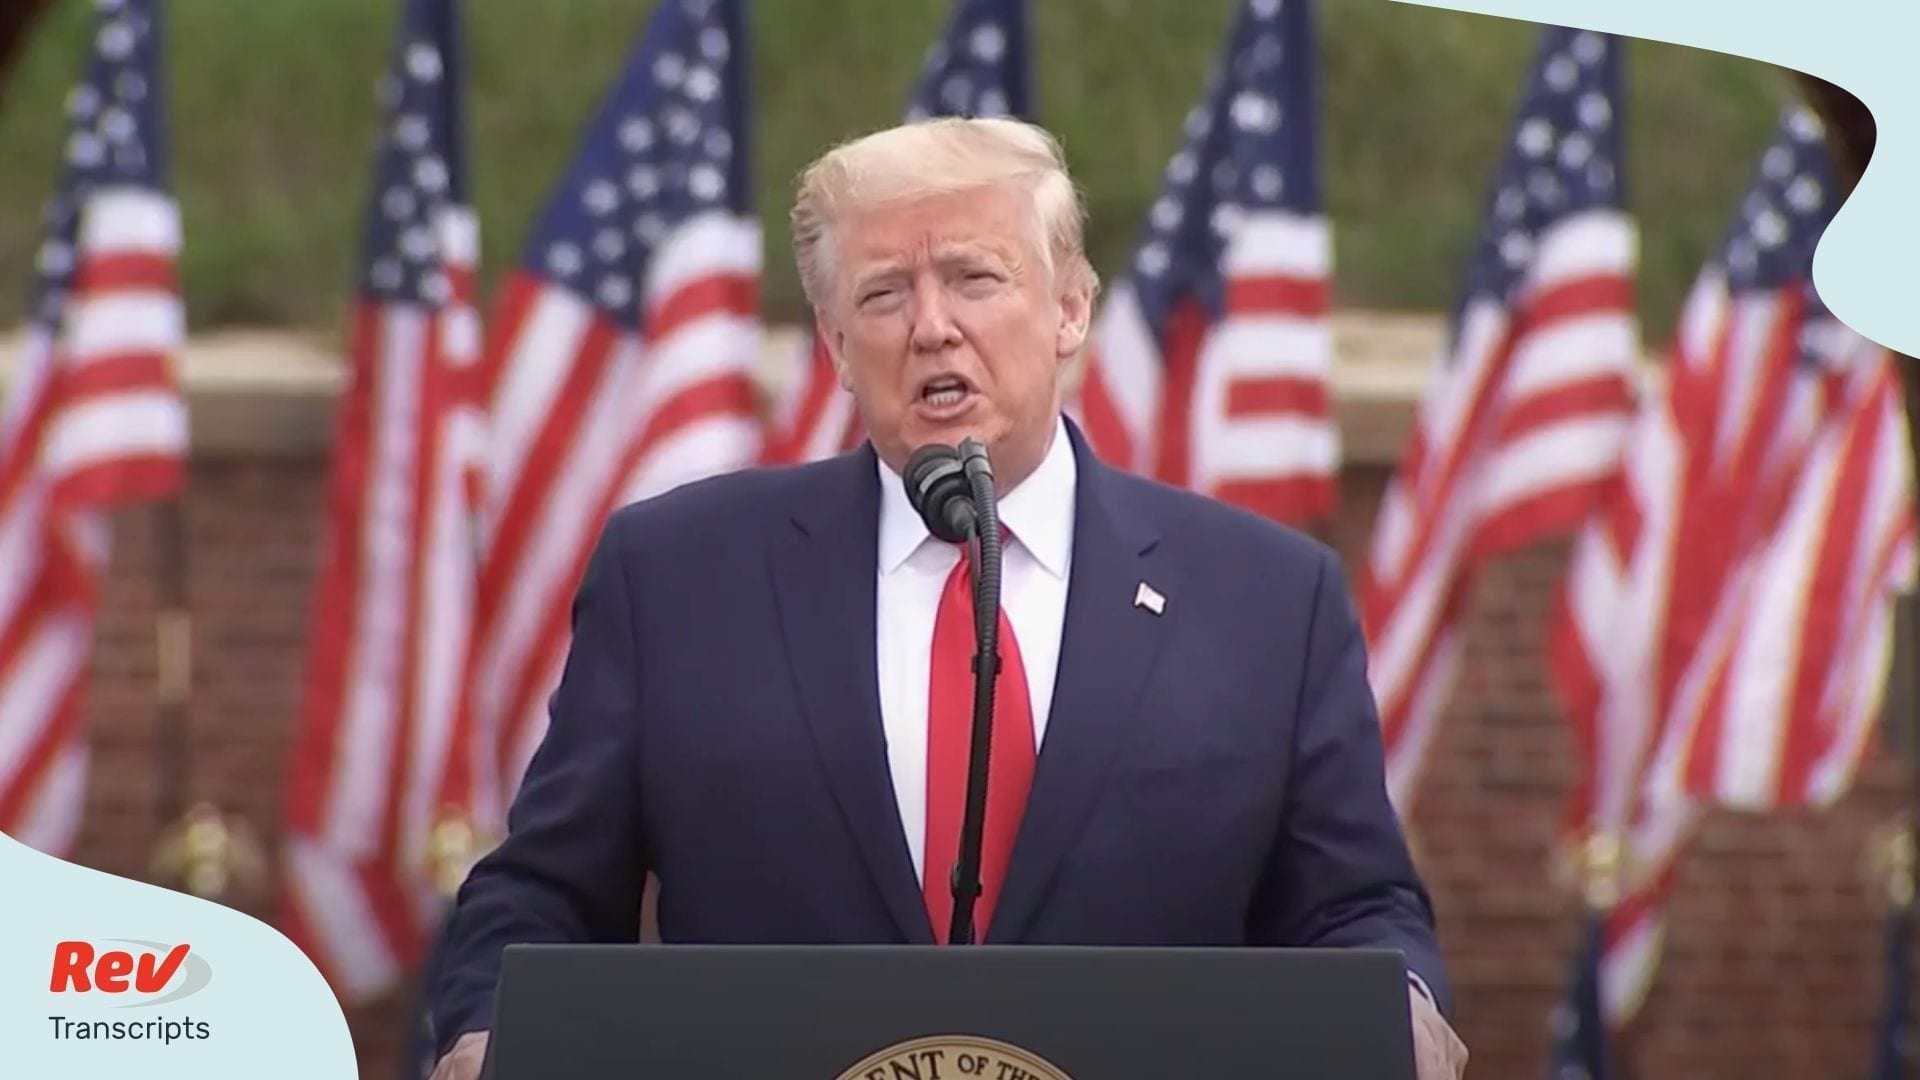 Donald Trump Memorial Day Speech Transcript 2020